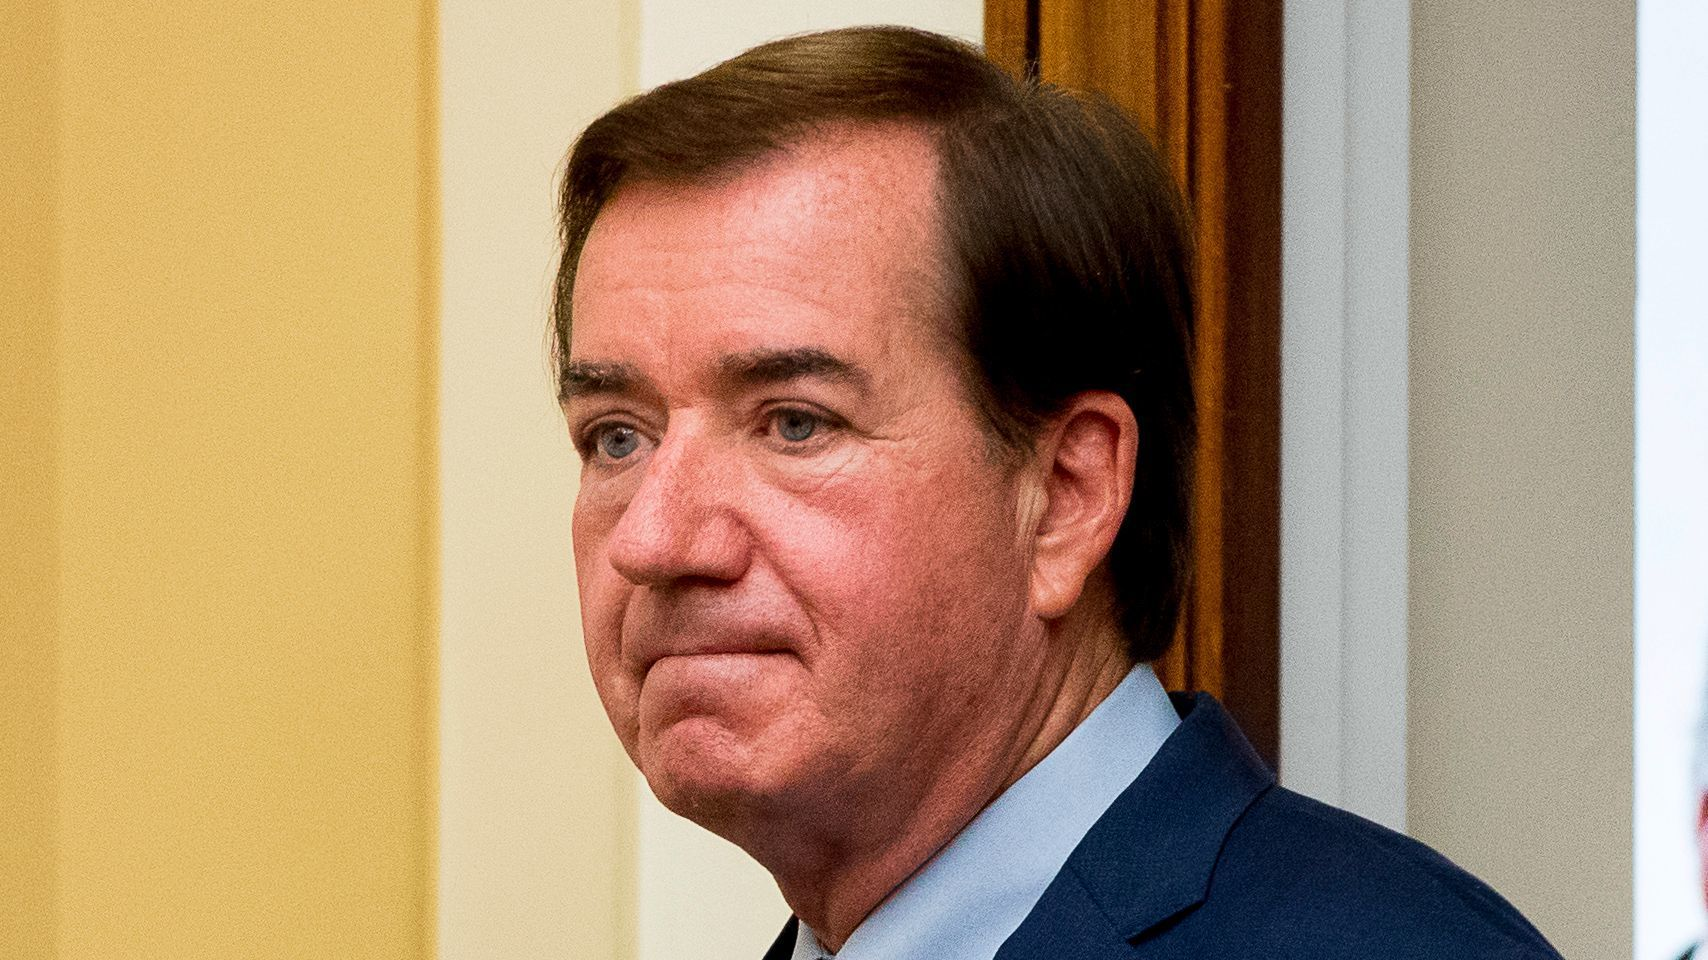 Ed Royce, Eliot Engel